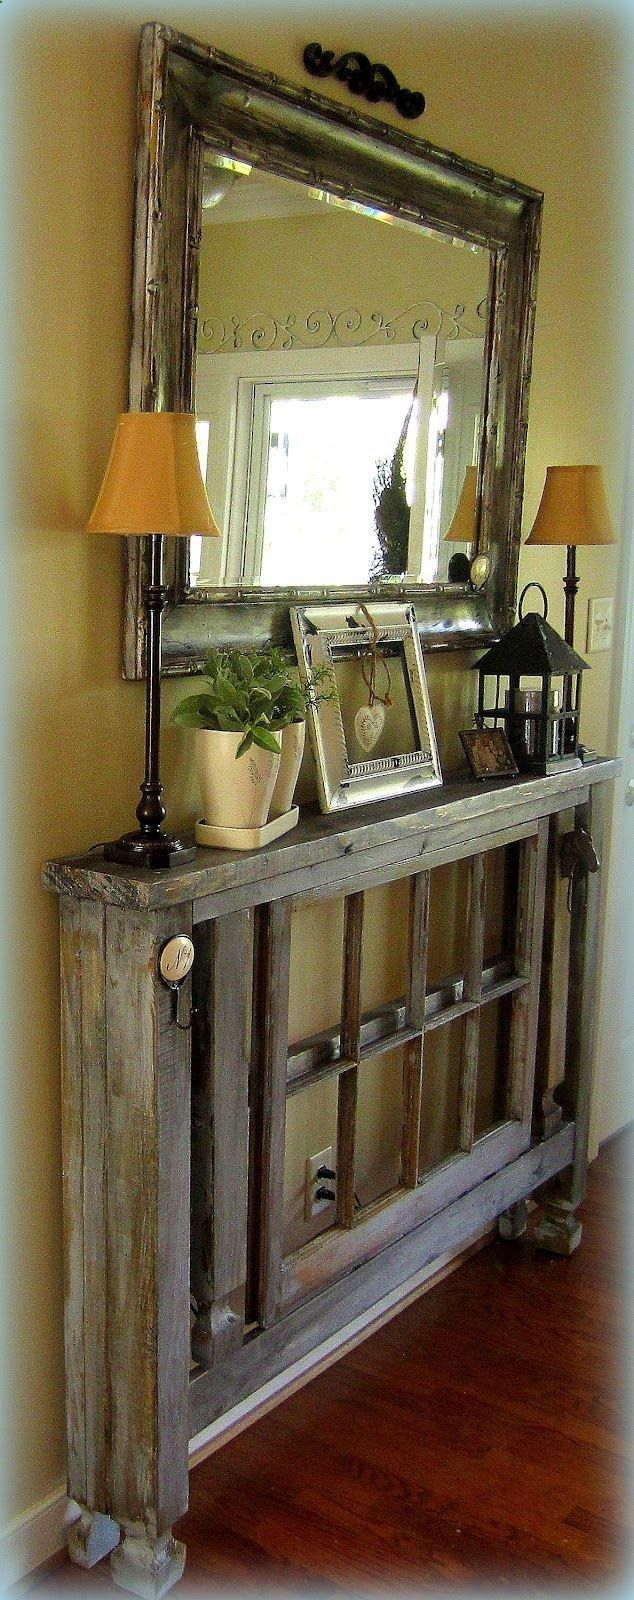 Entry way decor – No room in your hall way or entry? Wow… this solves it. My